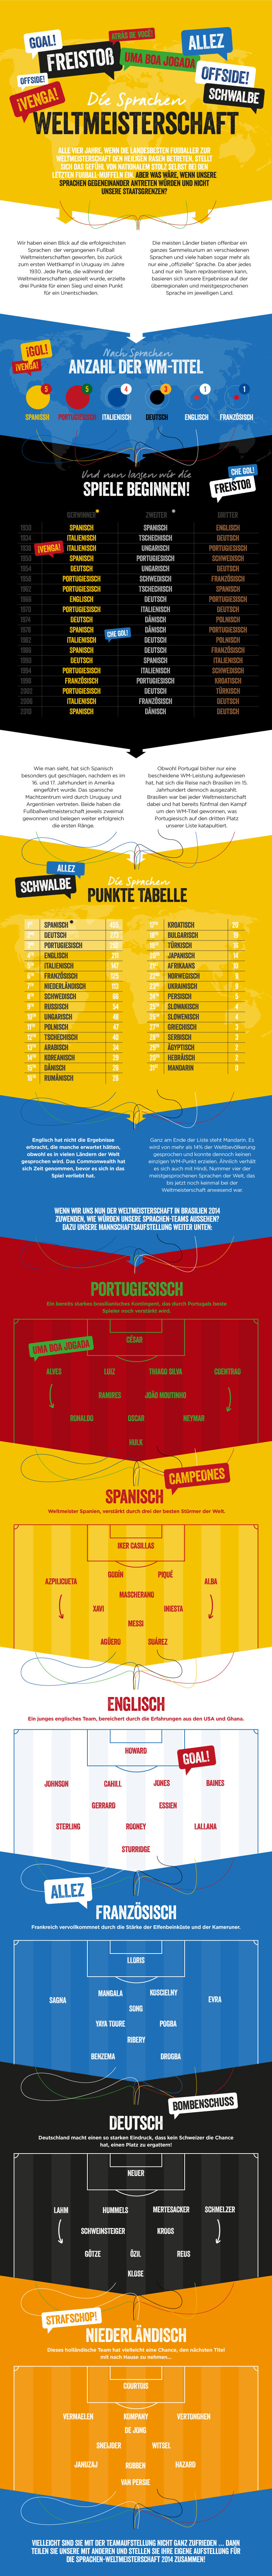 world-cup-german-infographic-sprachen